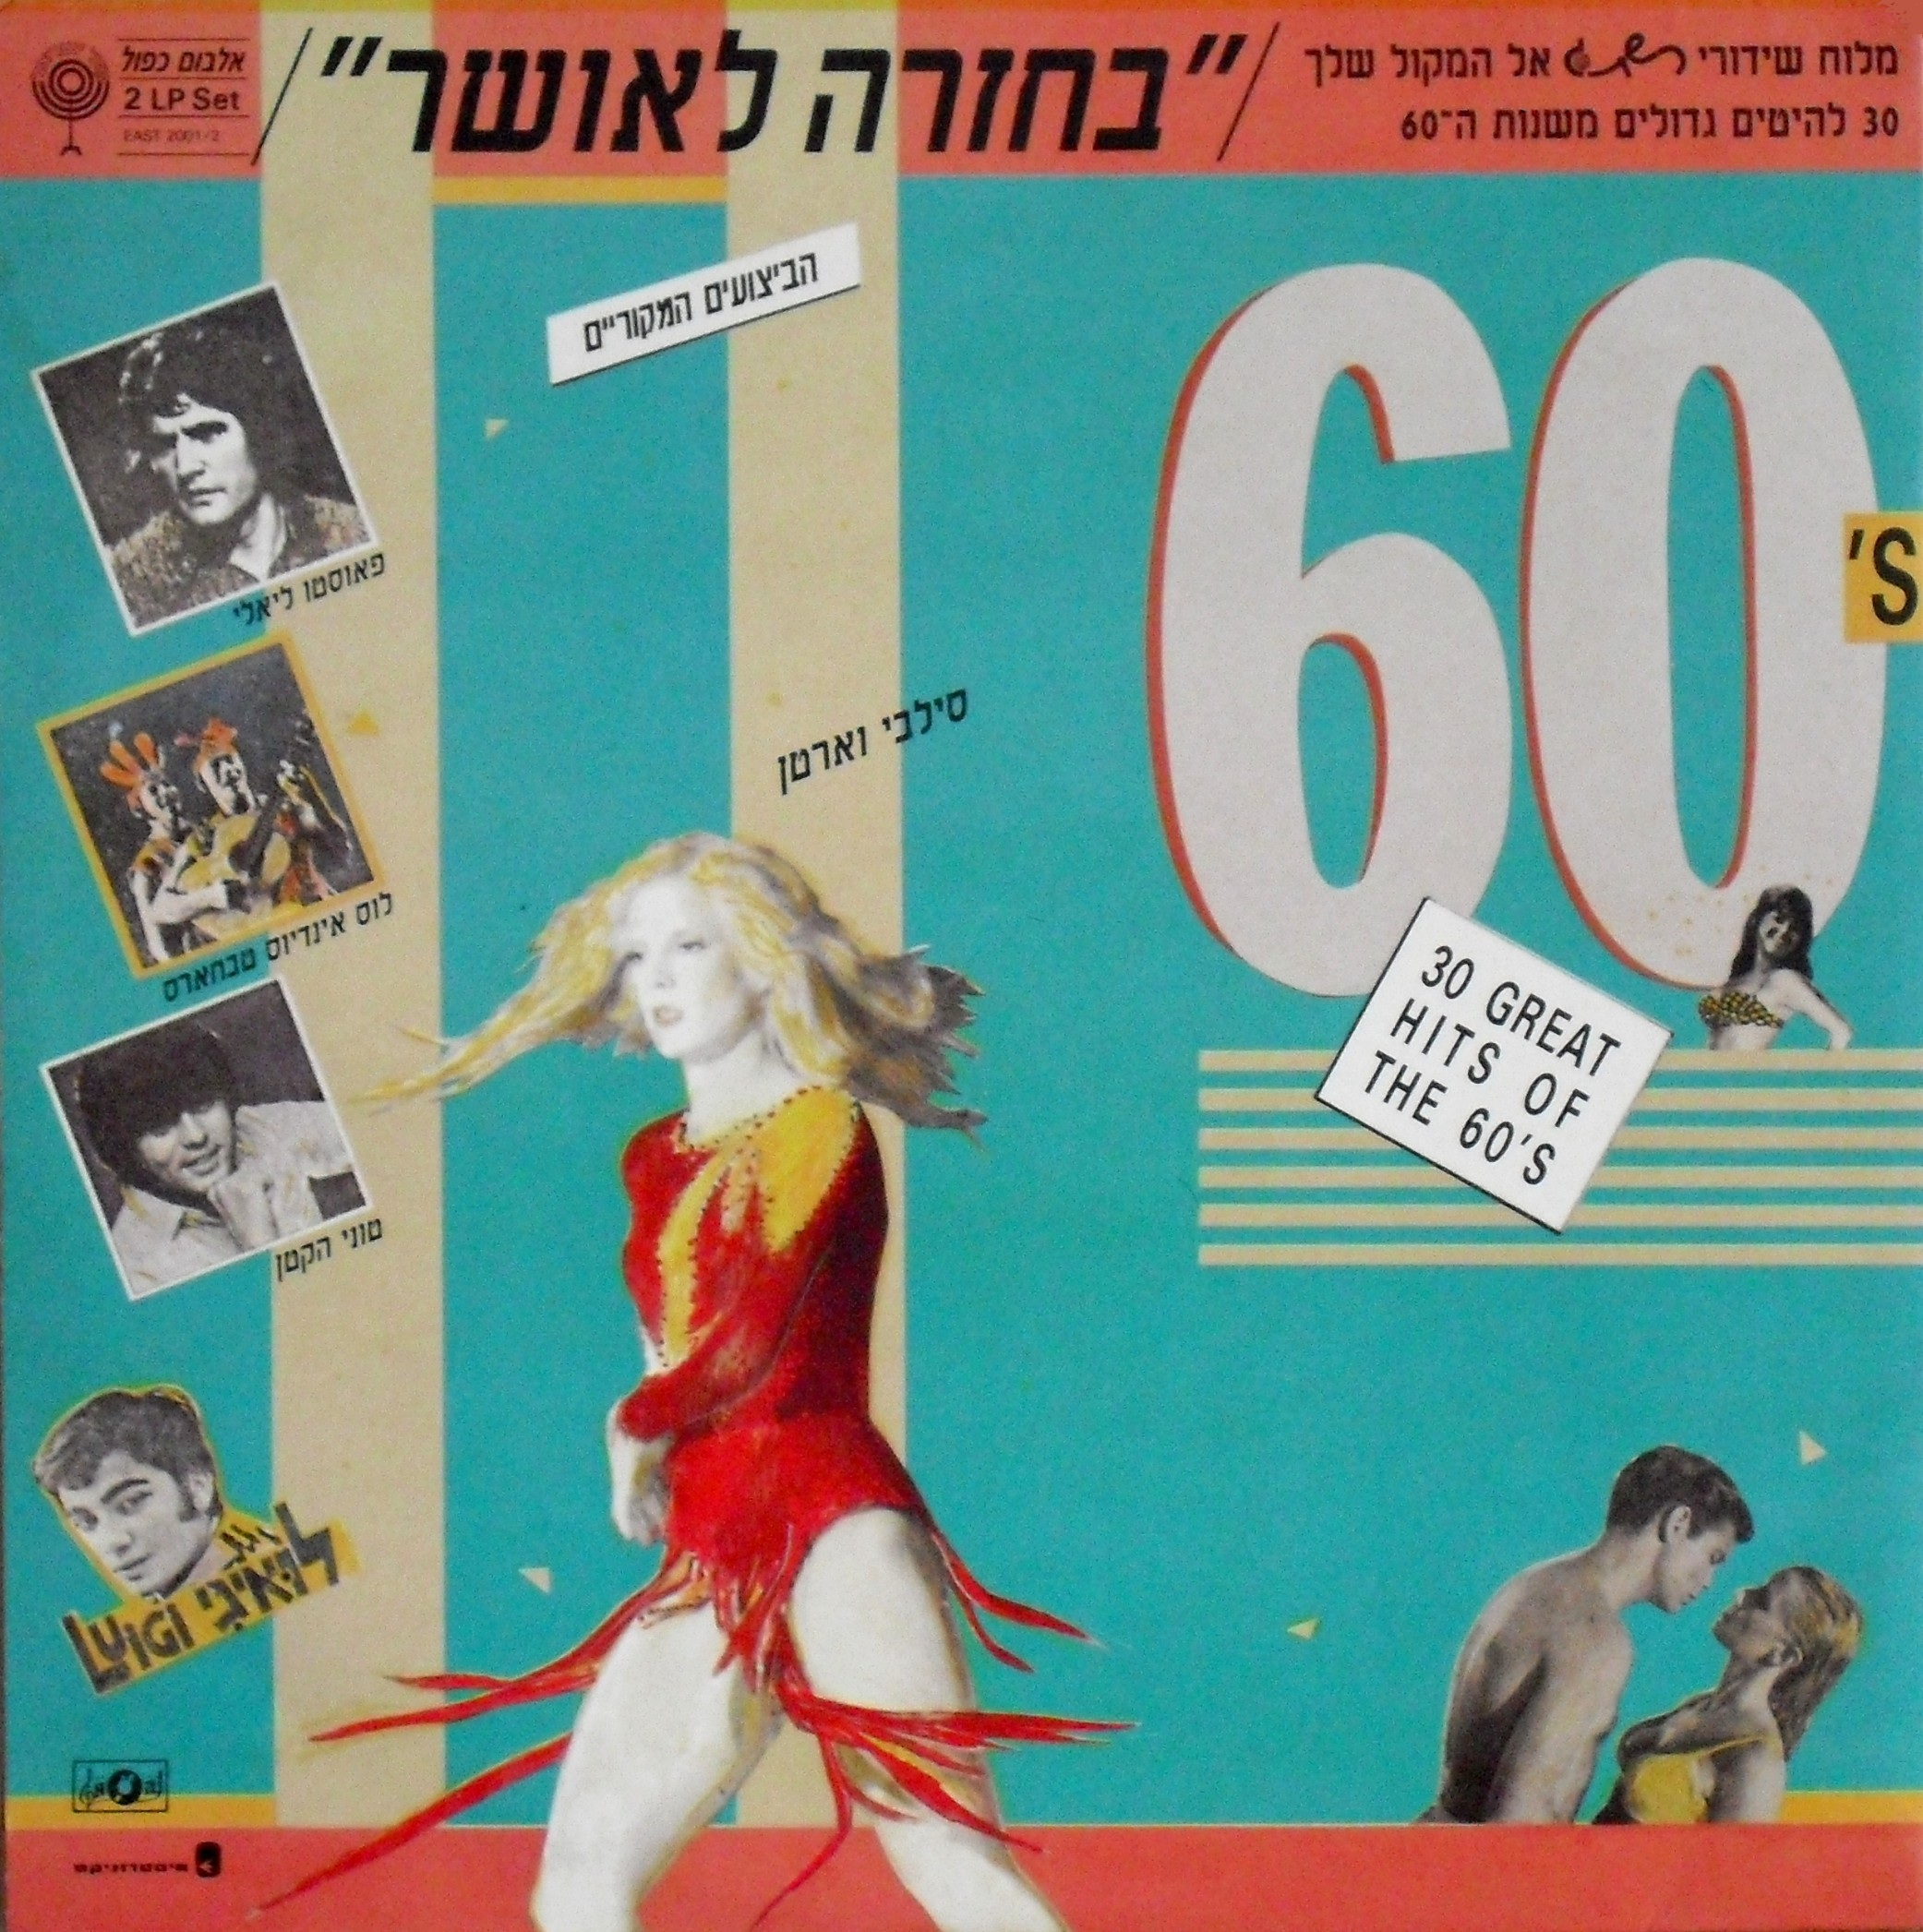 v.a. - 30 GREAT HITS OF THE 60`S 03ylsld